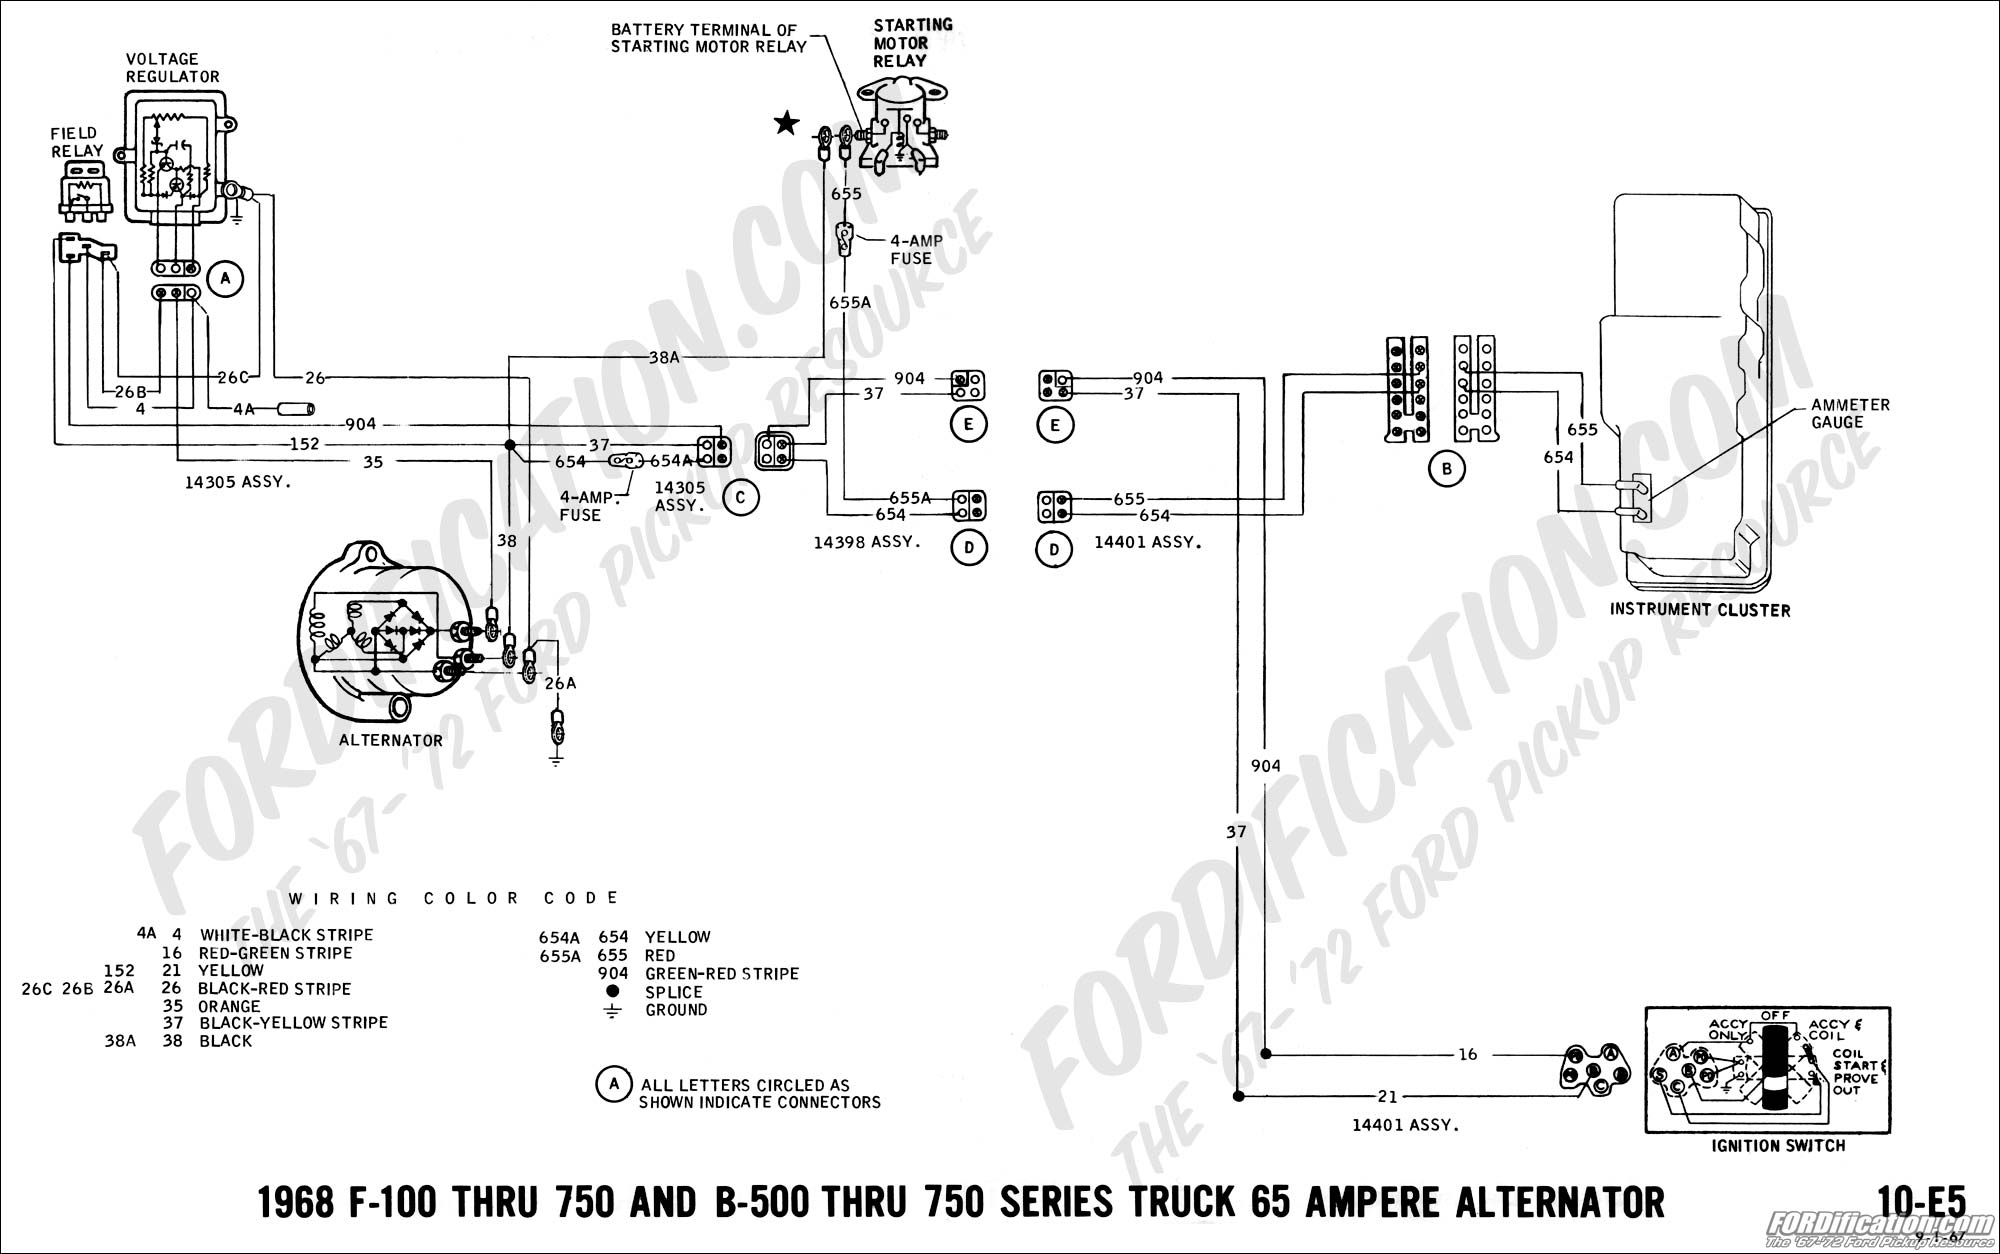 1994 Ford F 350 Alternator Wiring Great Installation Of 2000 F350 Super Duty Diagram Third Level Rh 10 15 18 Jacobwinterstein Com Freightliner Trailer Lights Not